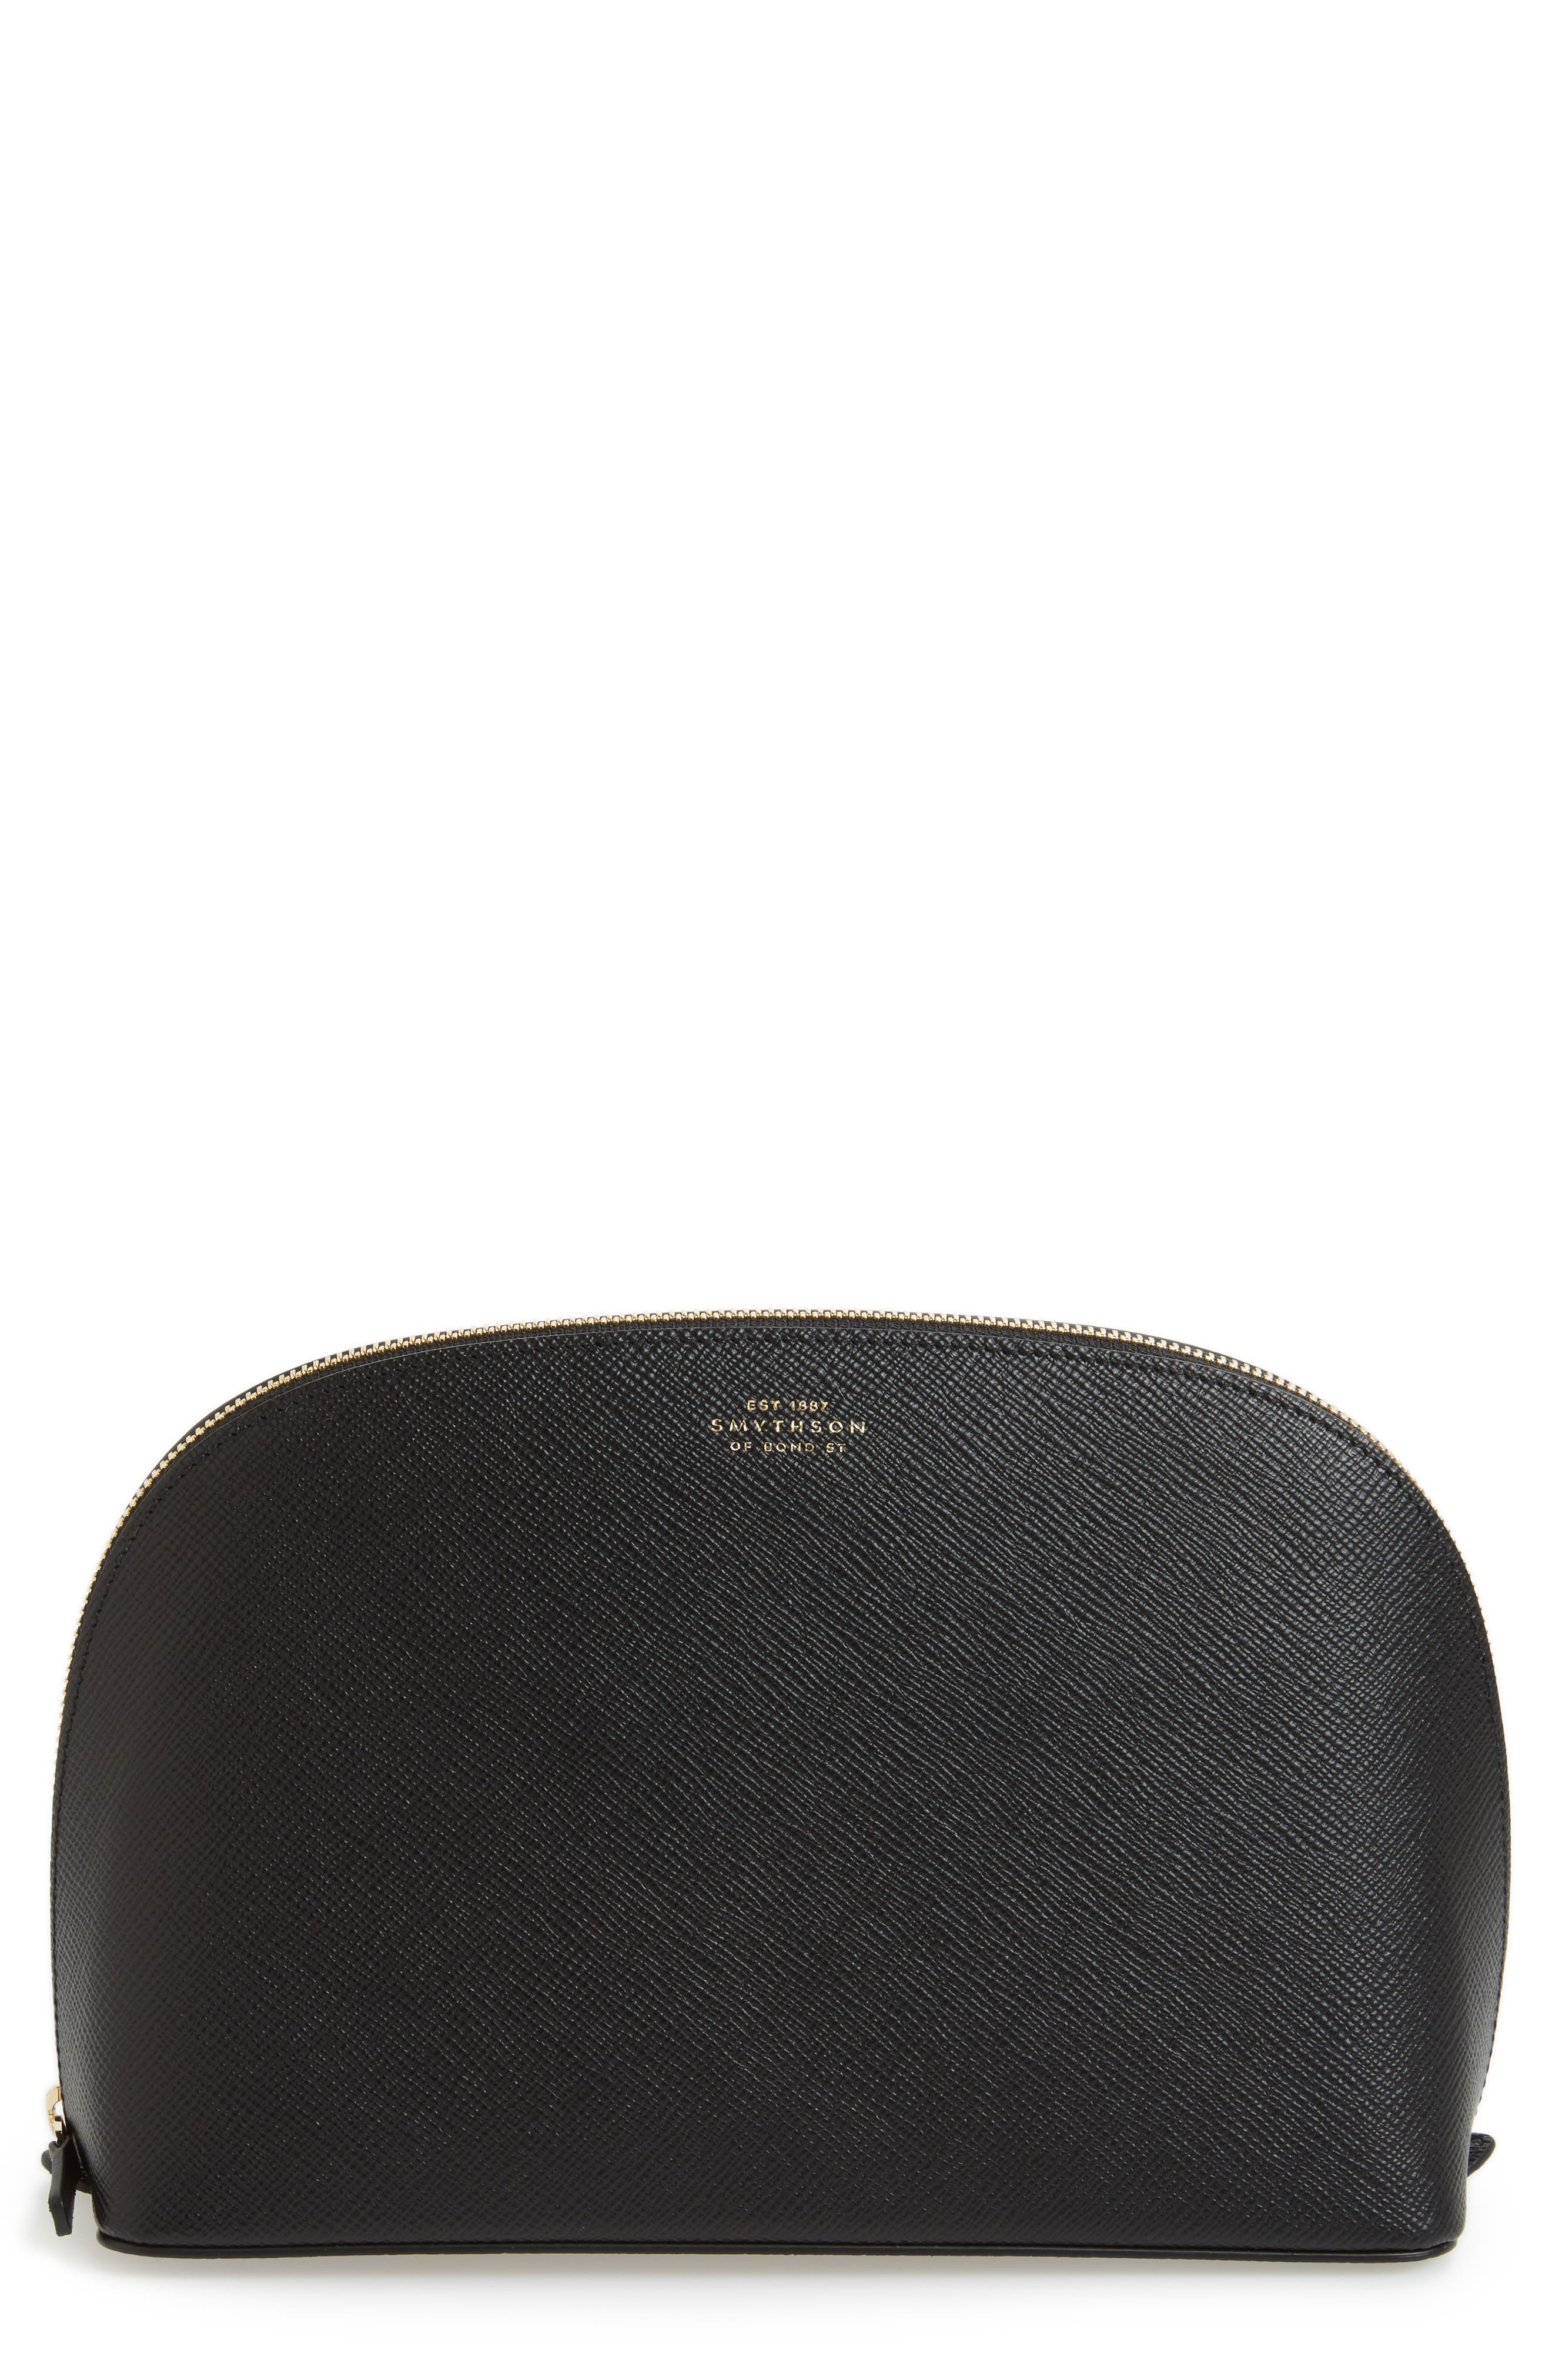 Smythson Medium Leather Cosmetics Bag